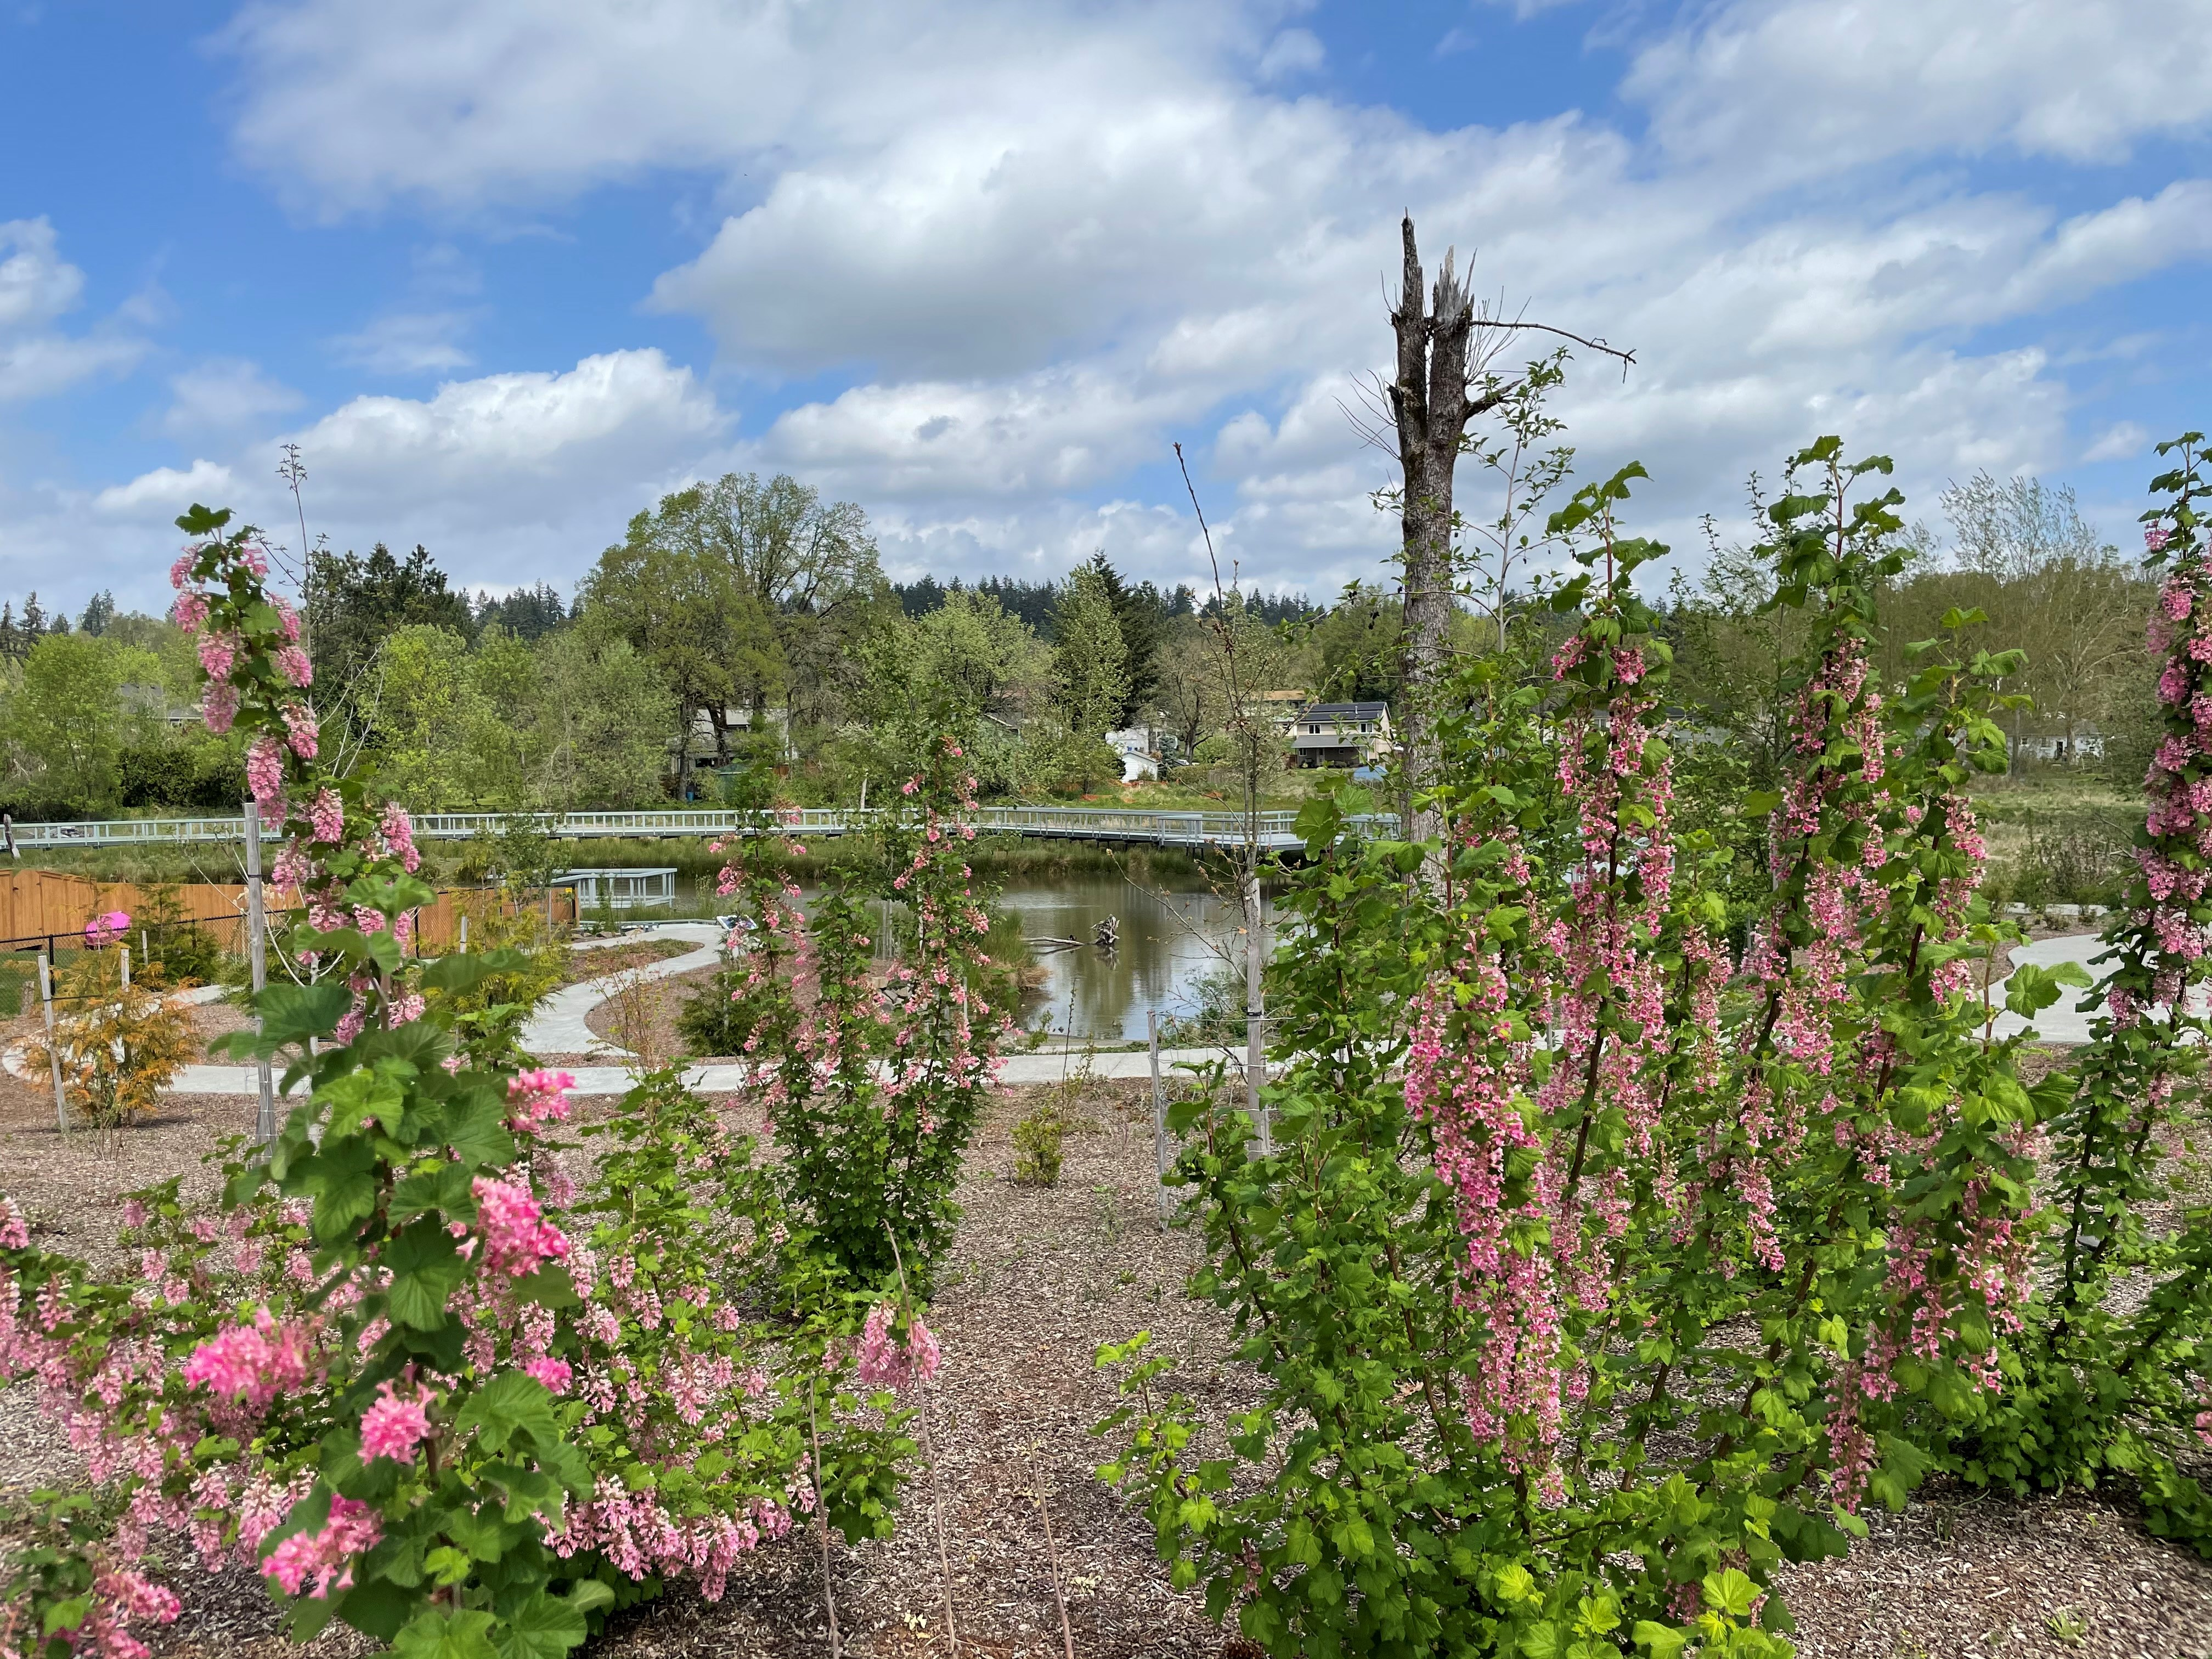 a view of wetlands and paved trails through tall stalks of pink flowers